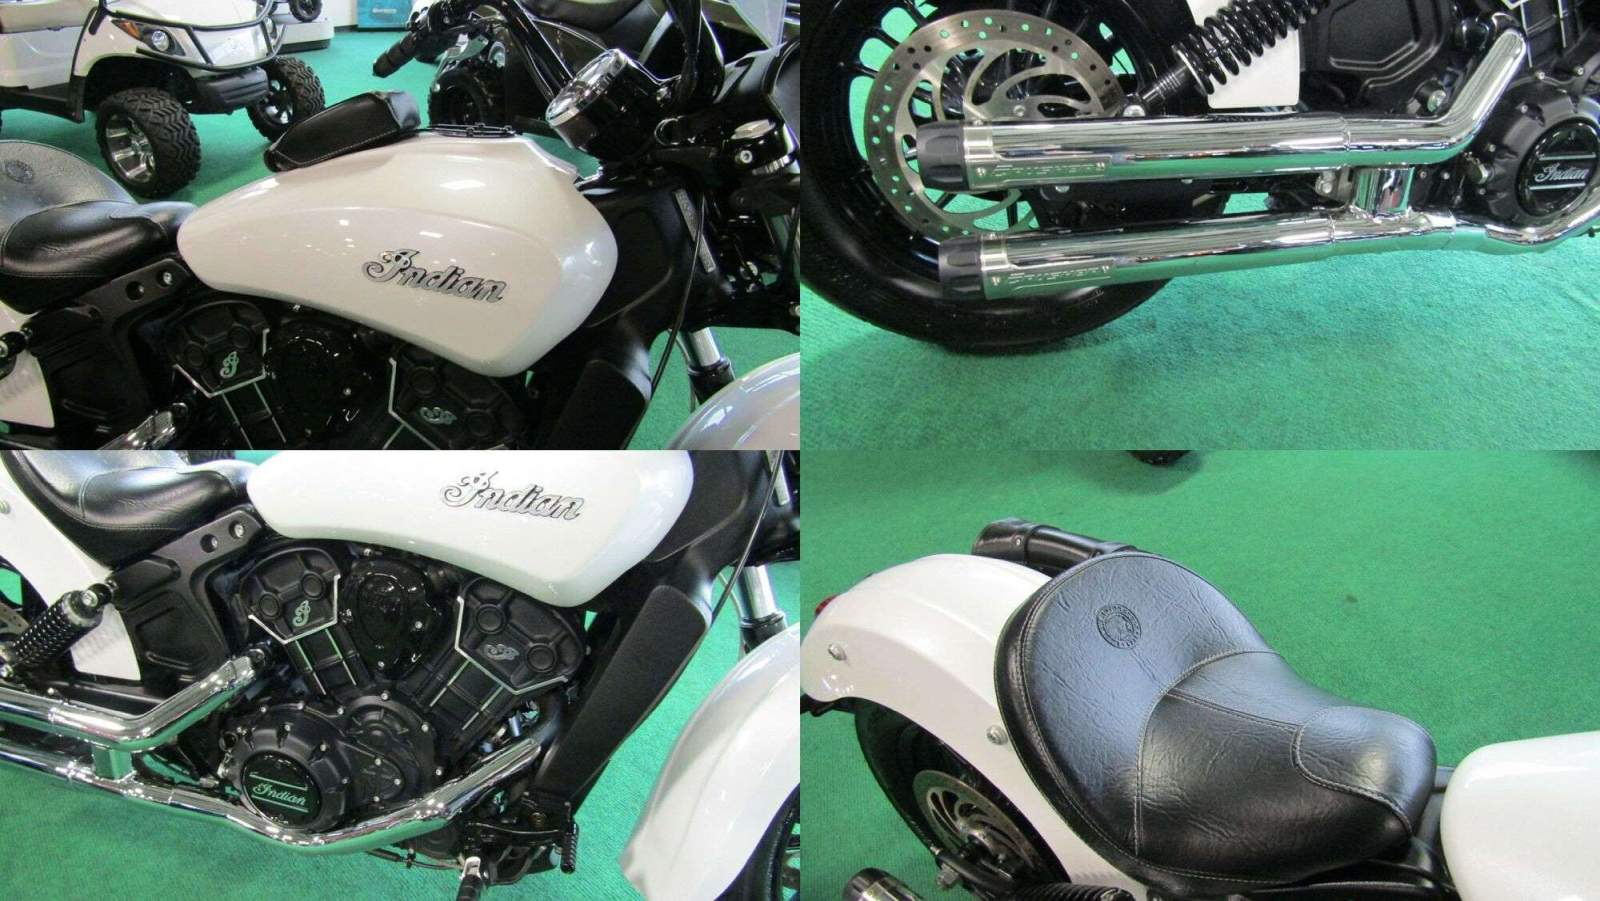 2016 Indian Scout Sixty White used for sale near me